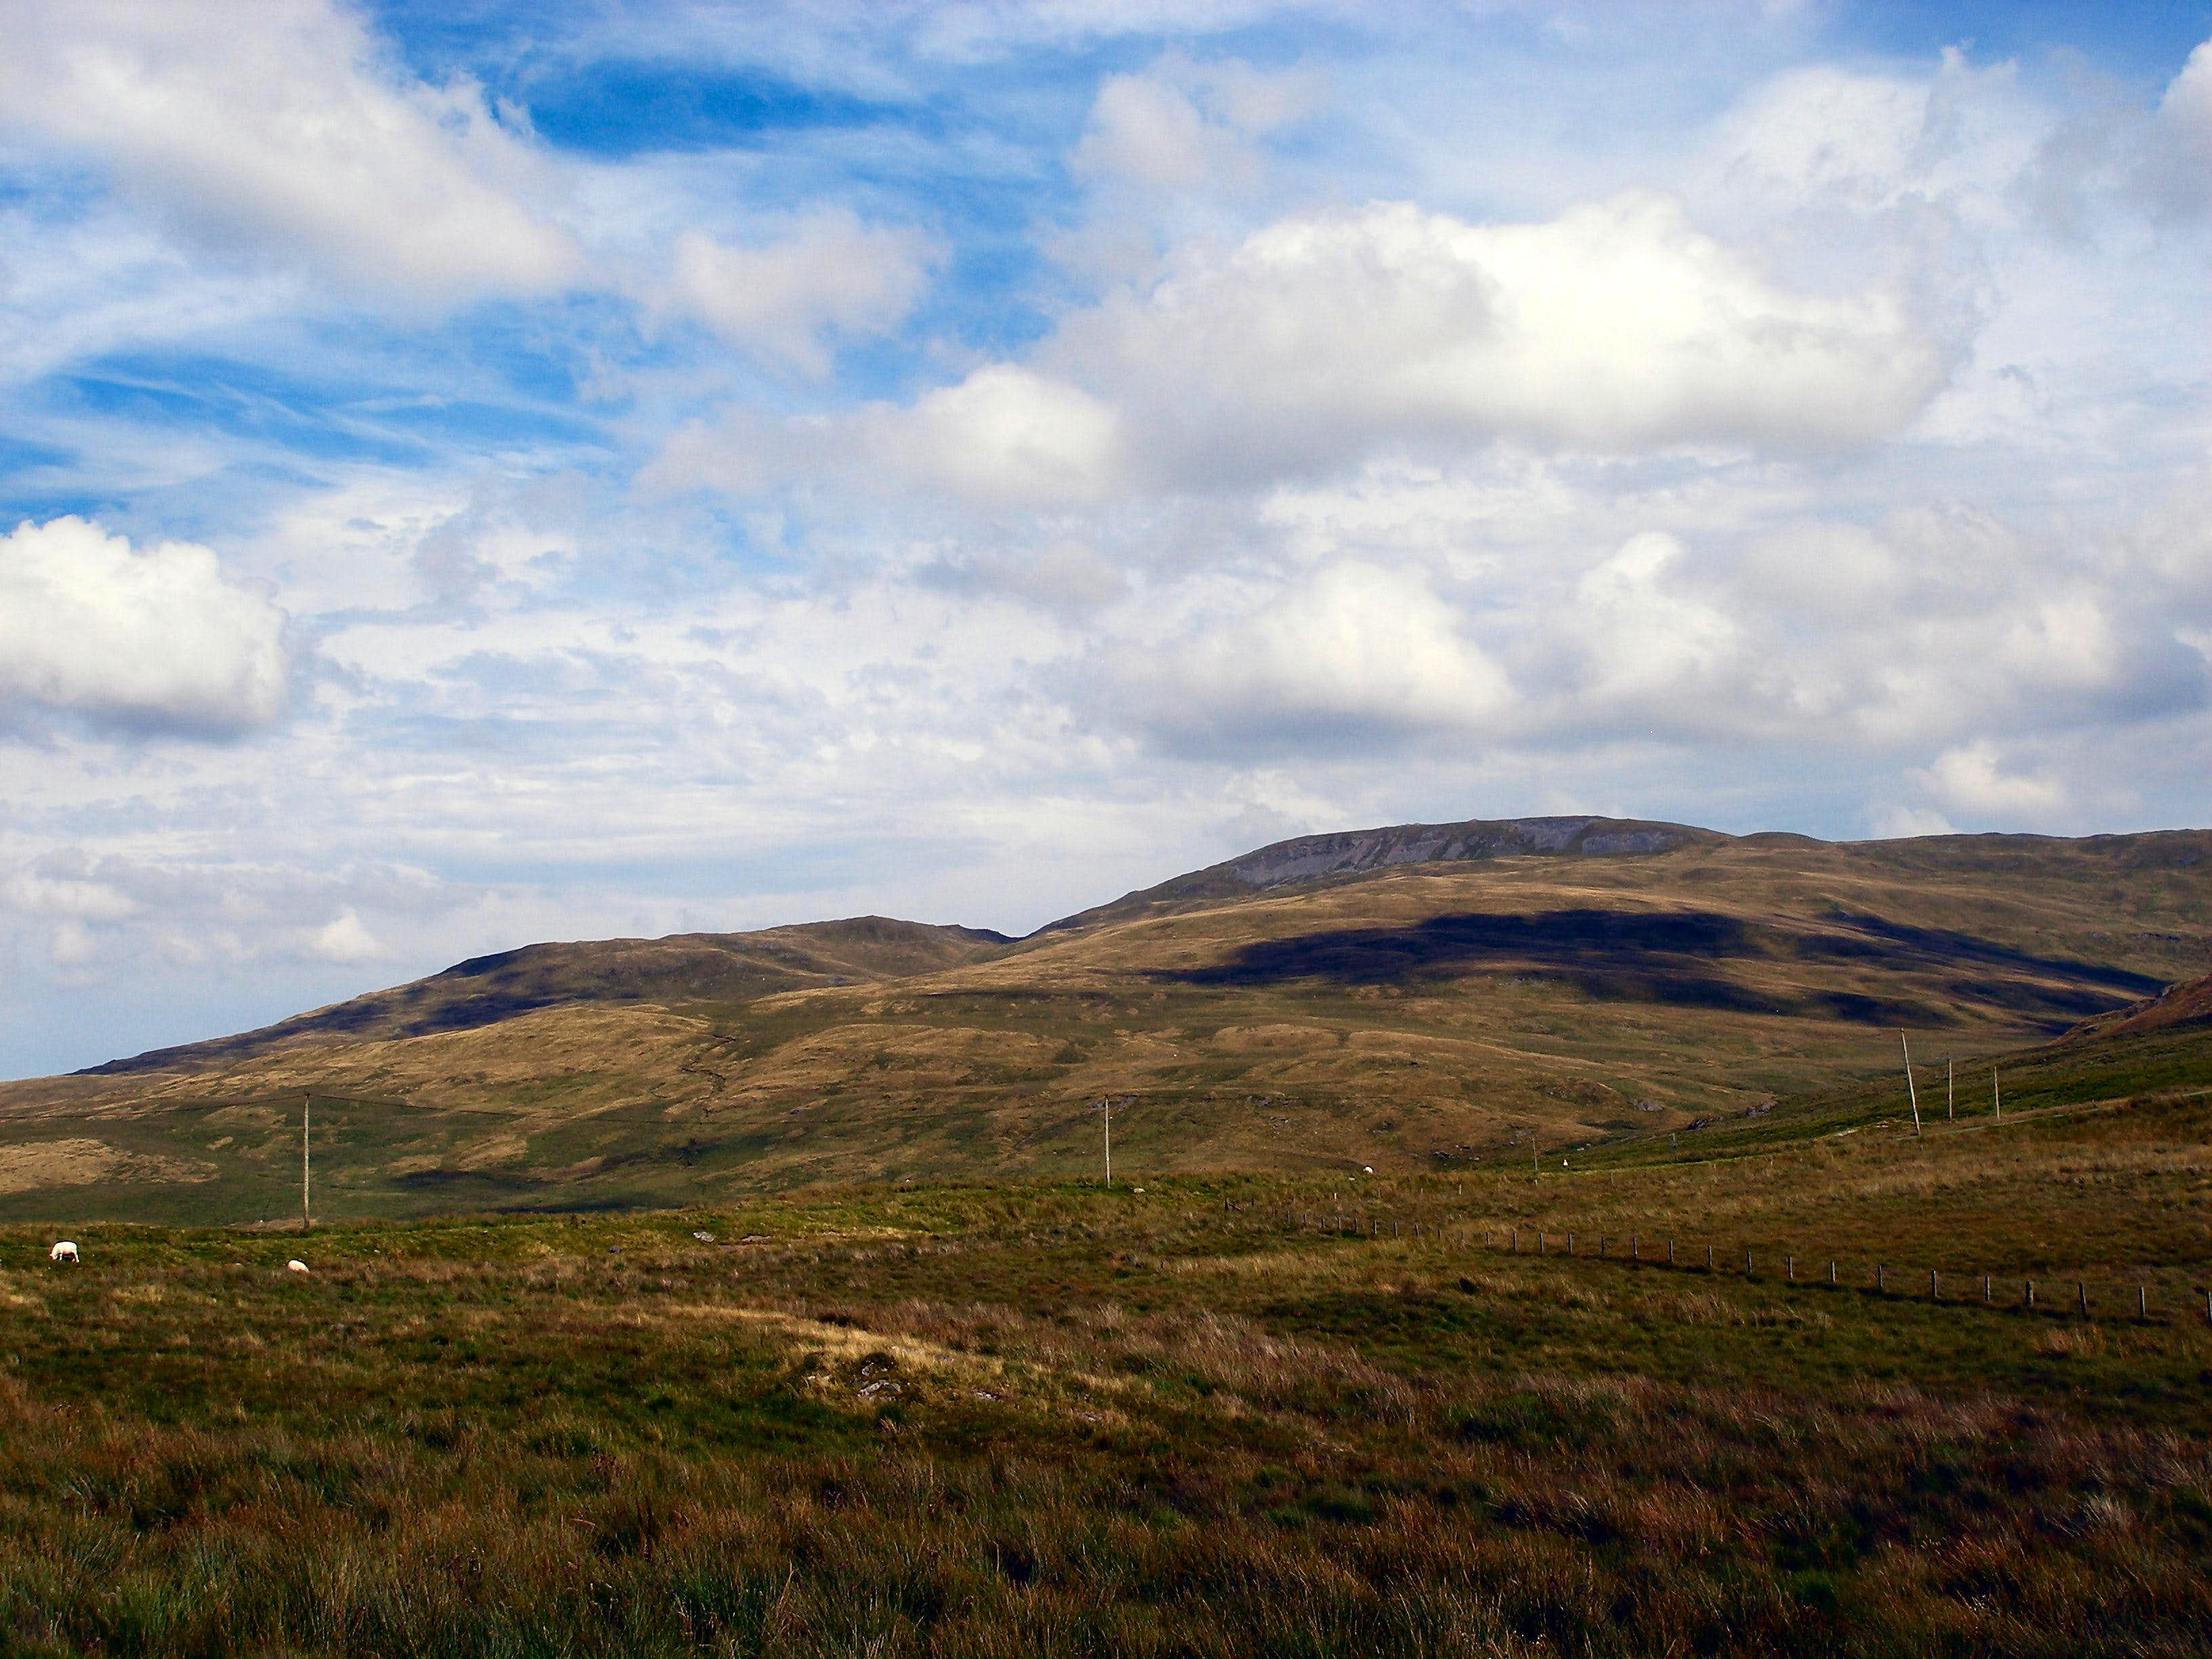 Mountains and Promontory Peaks of the Cambrian Mountains